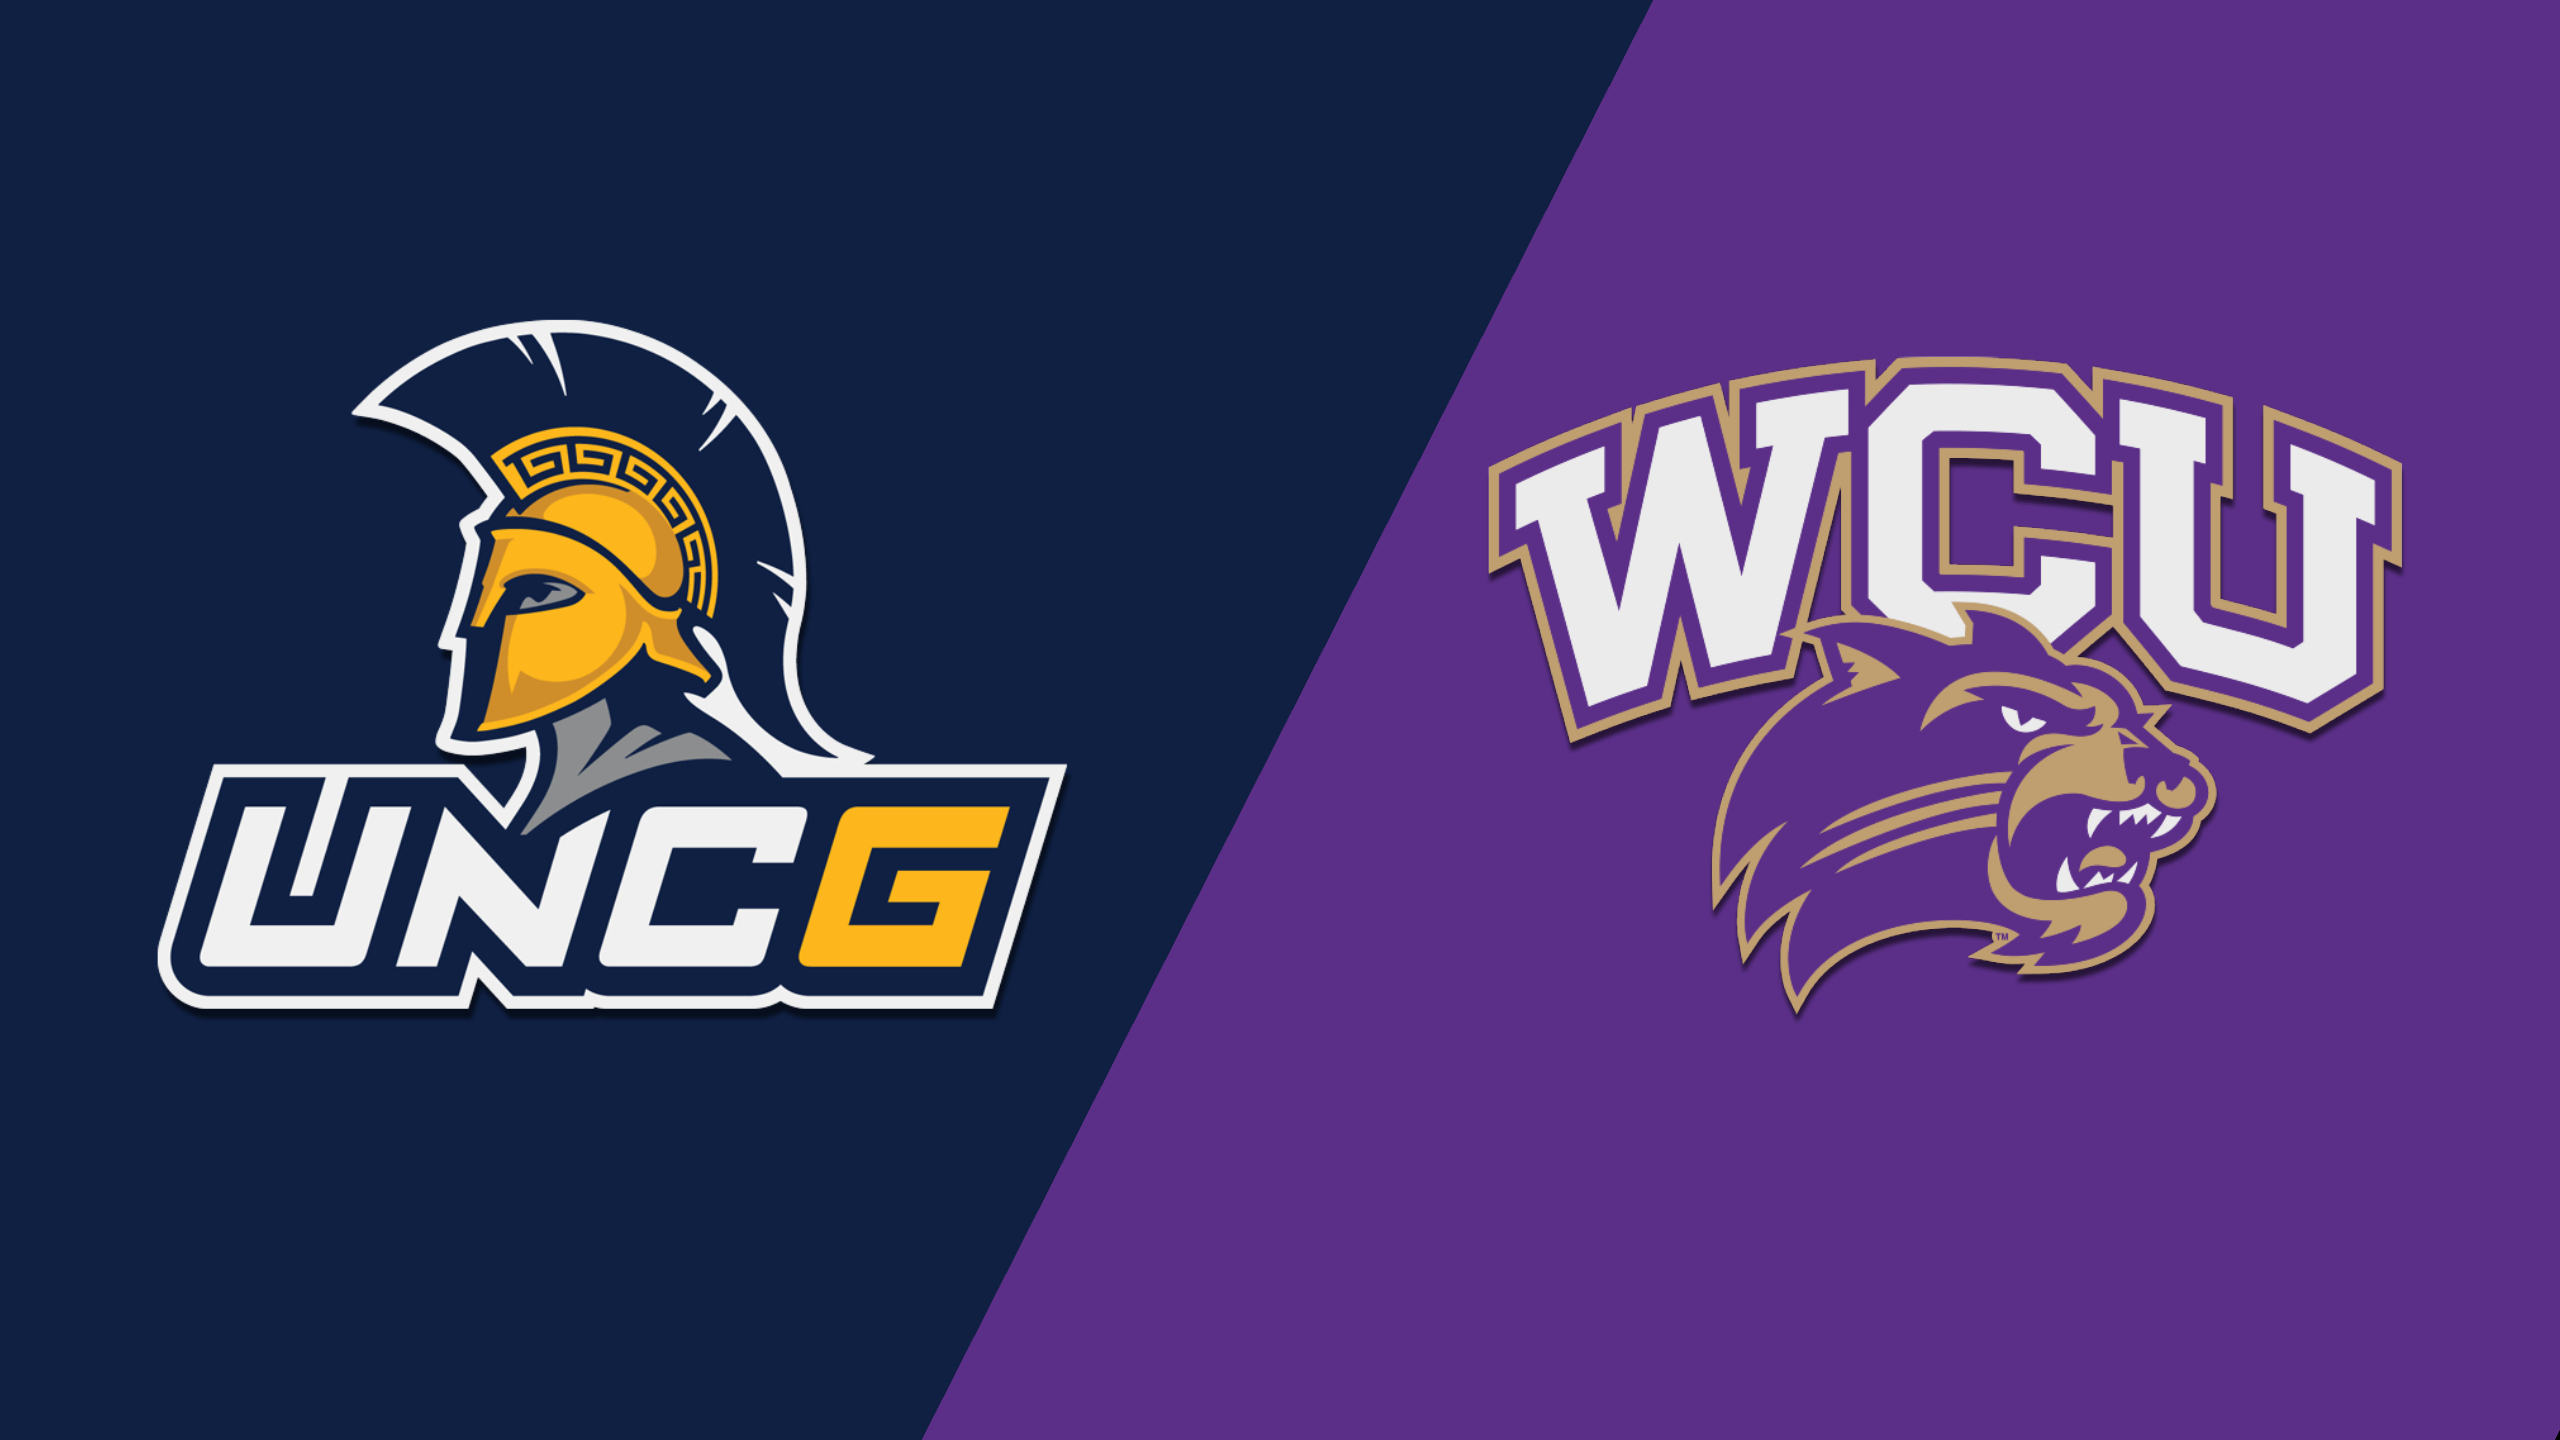 UNC Greensboro vs. Western Carolina (W Basketball)